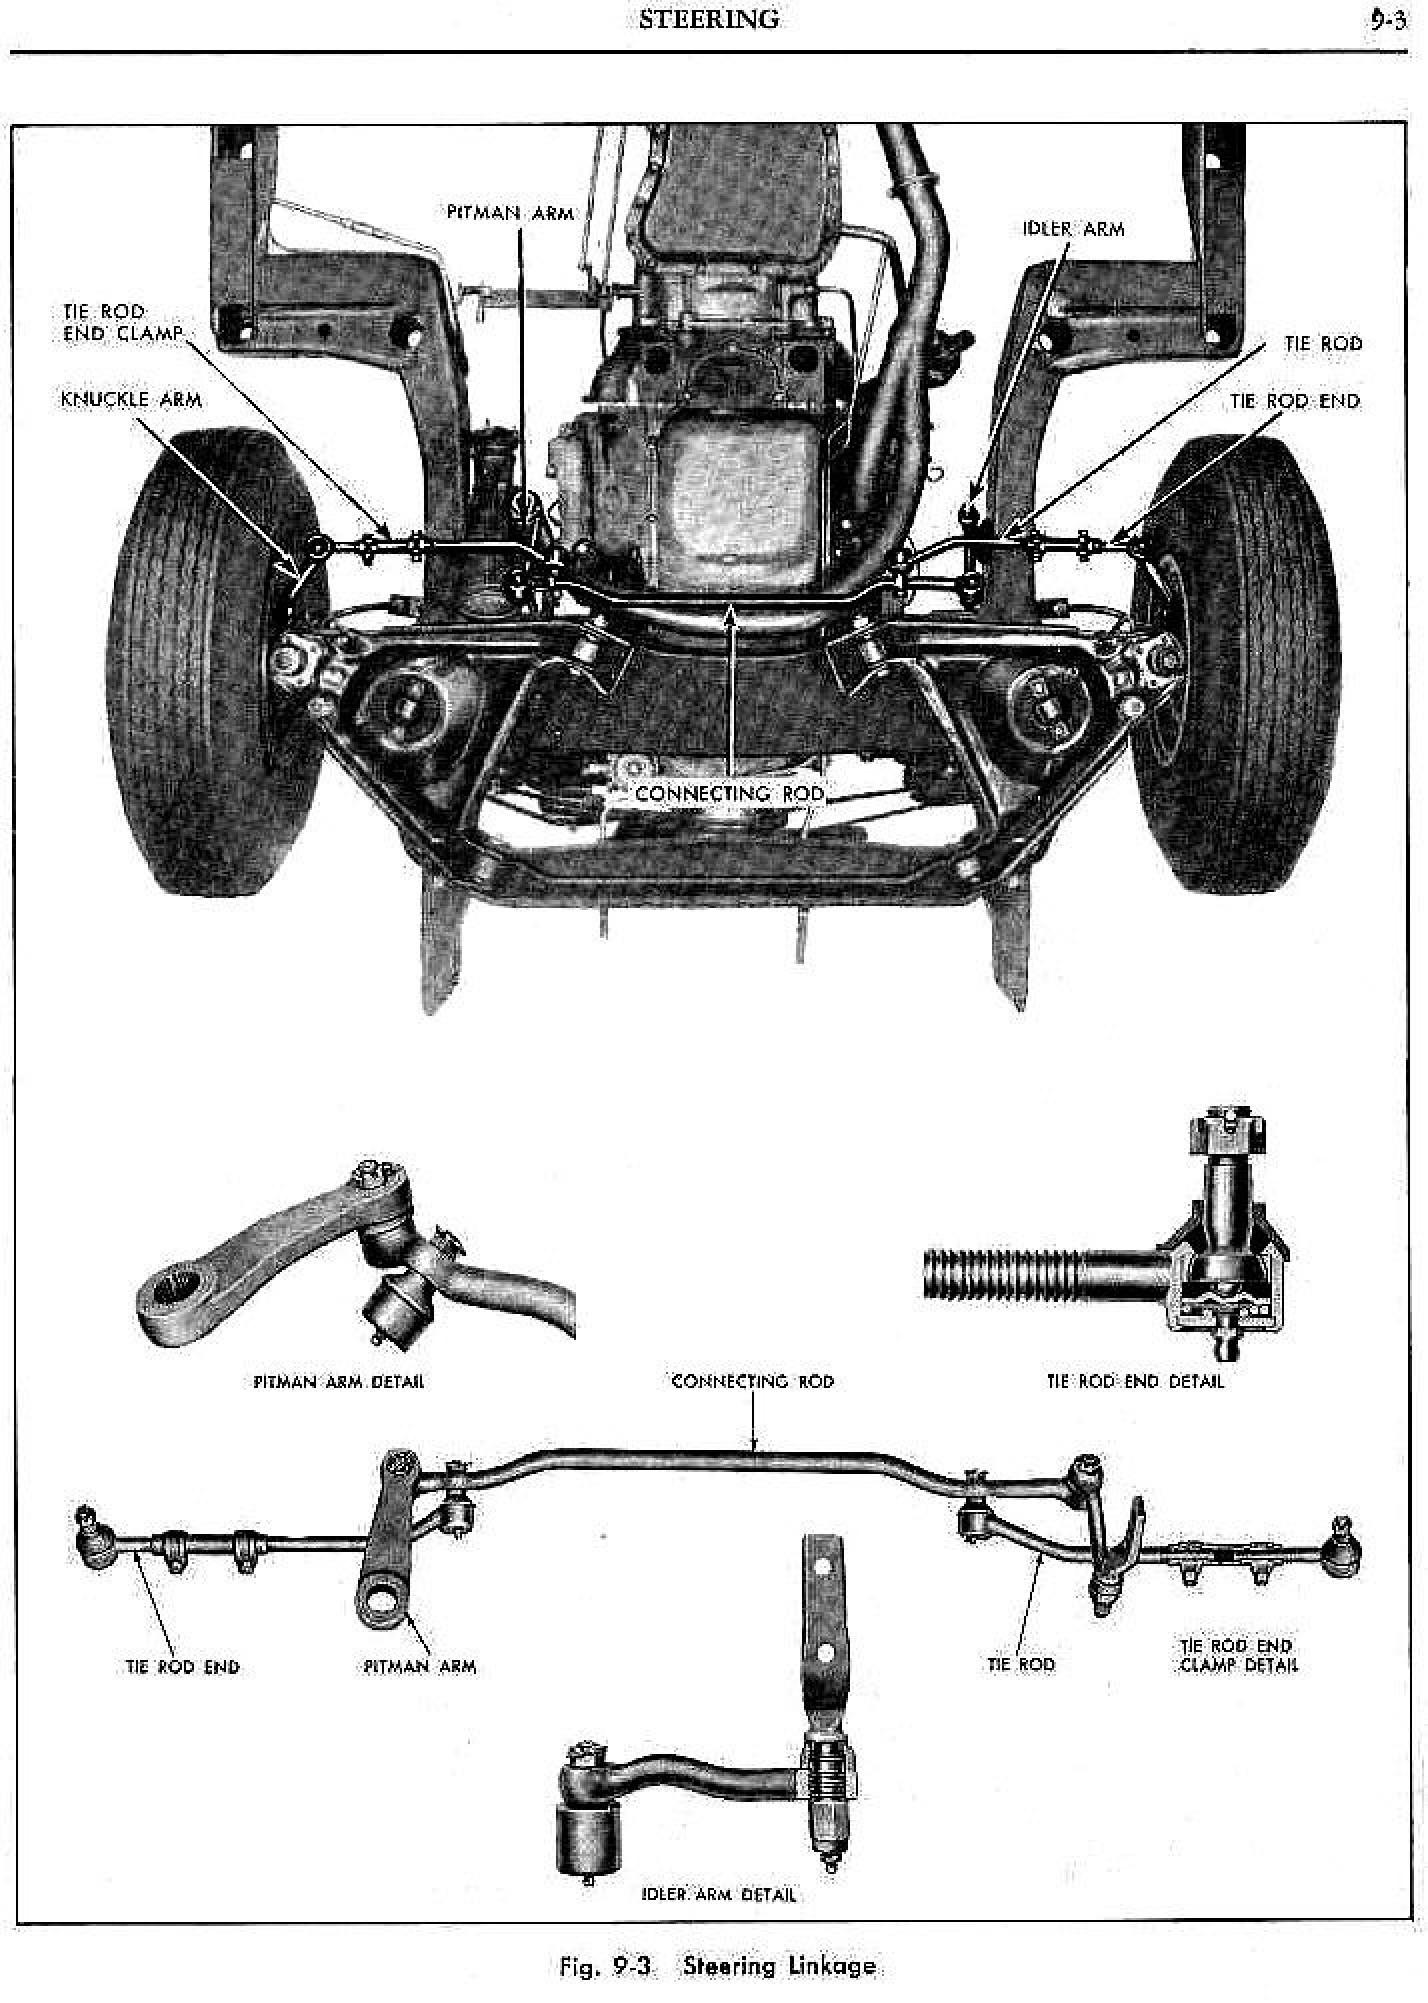 1961 Pontiac Shop Manual- Steering Page 3 of 22